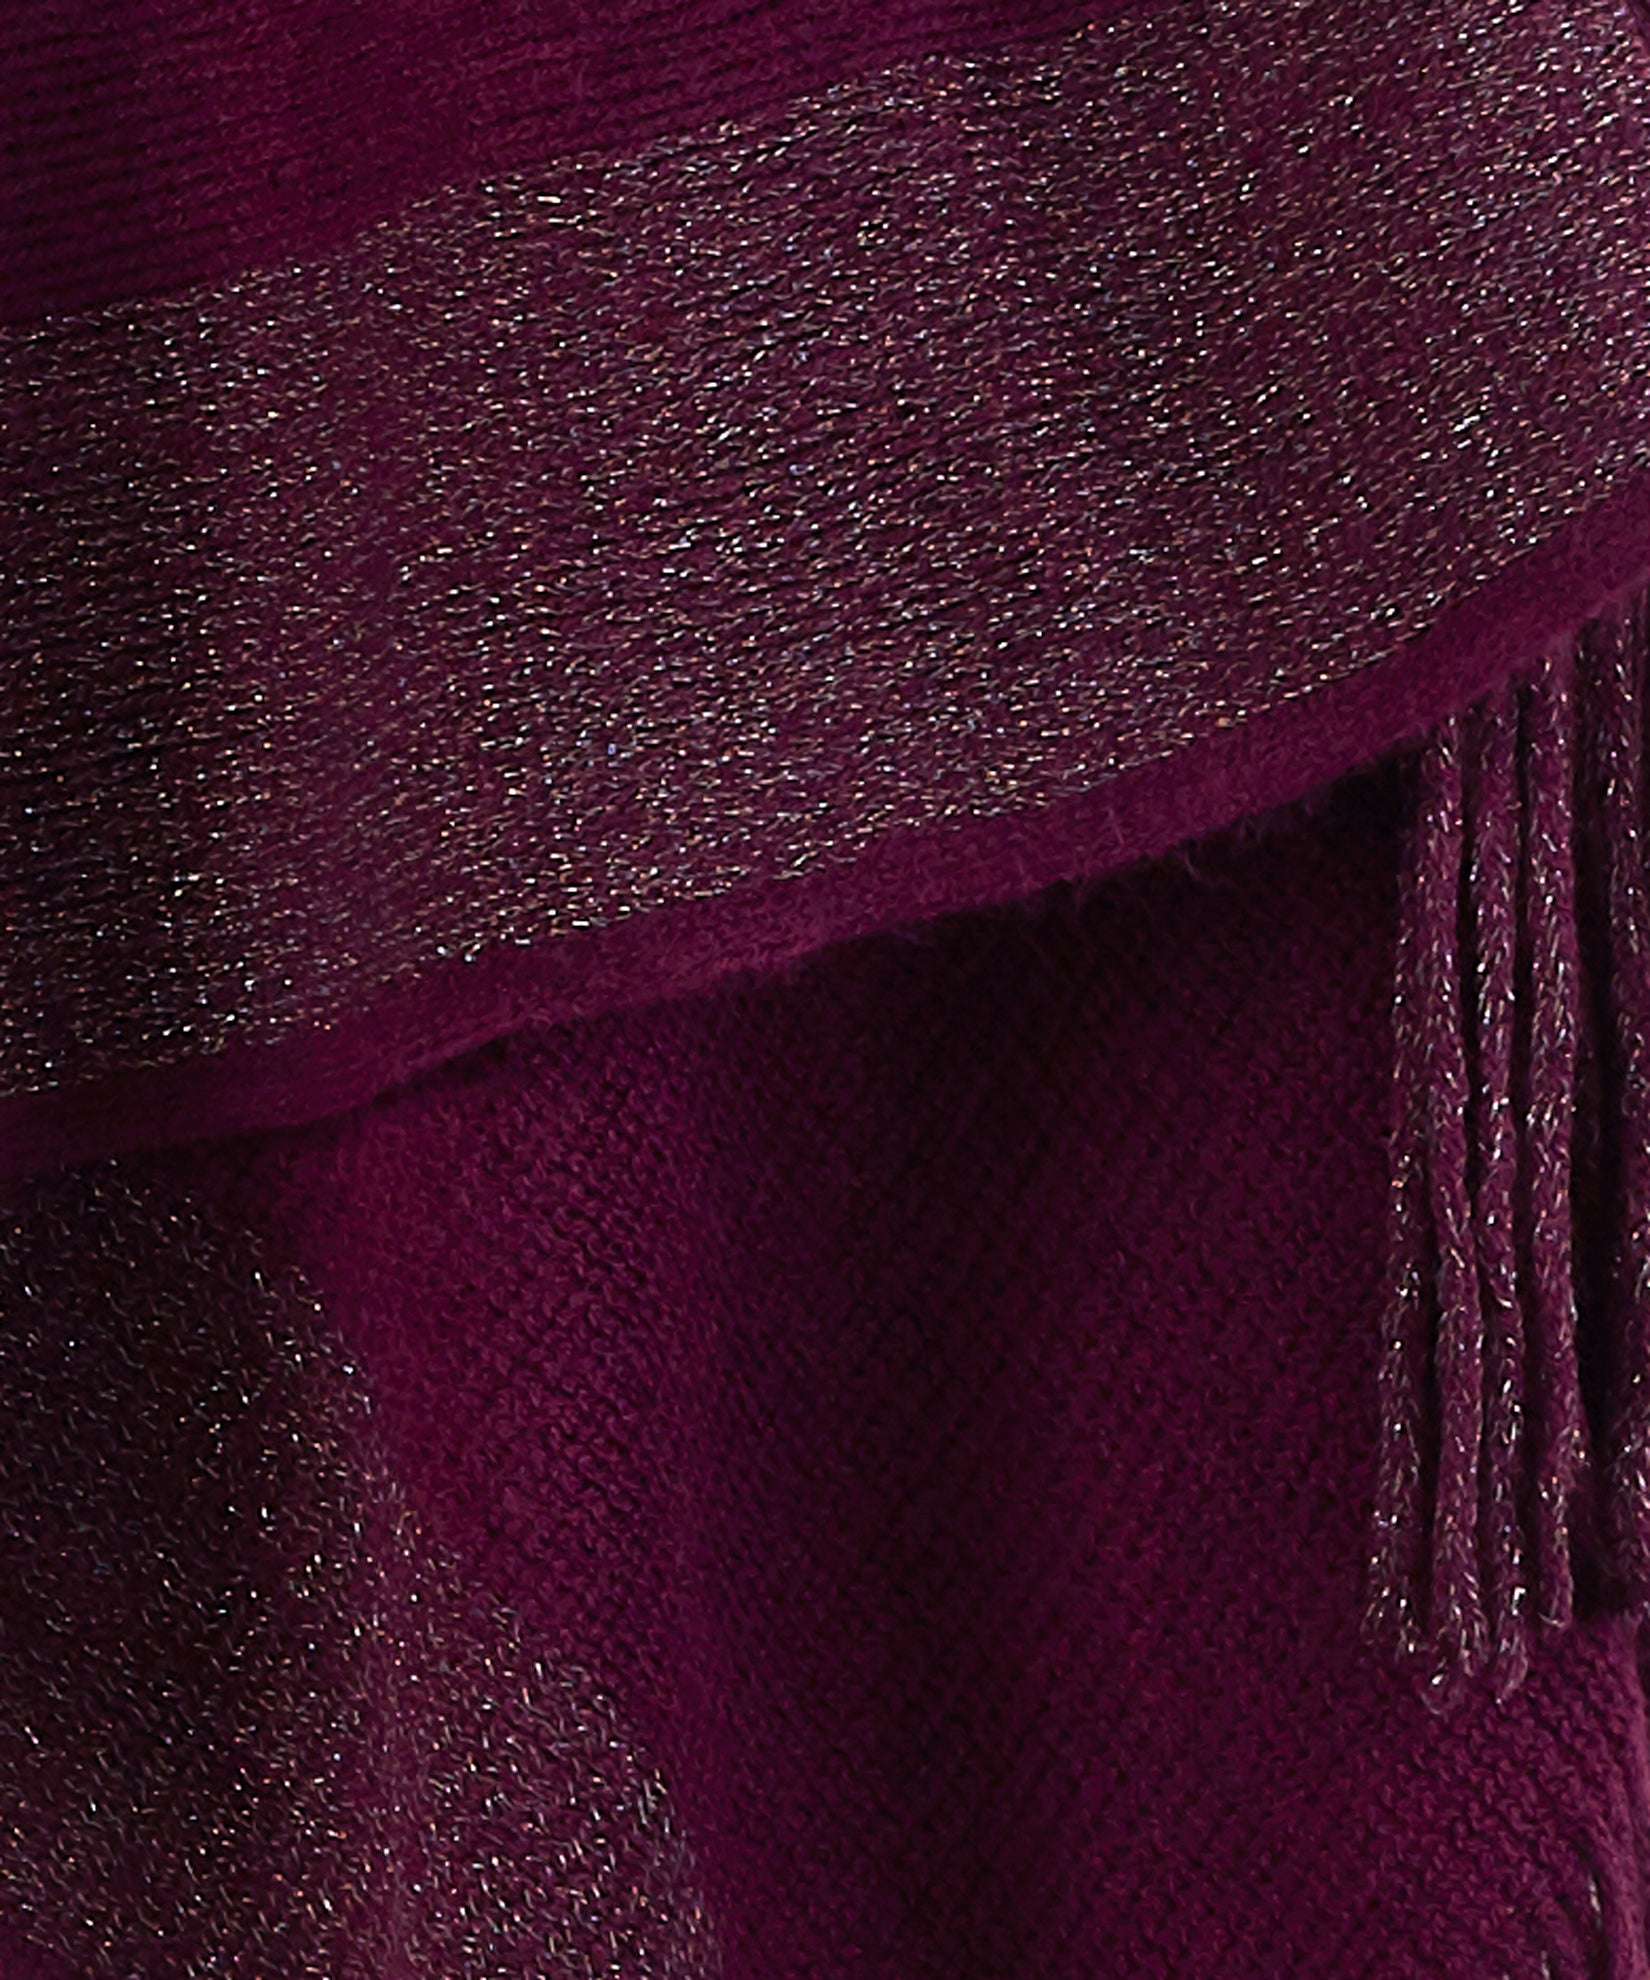 Pickled Beet - Metallic Stripe Warp Knit